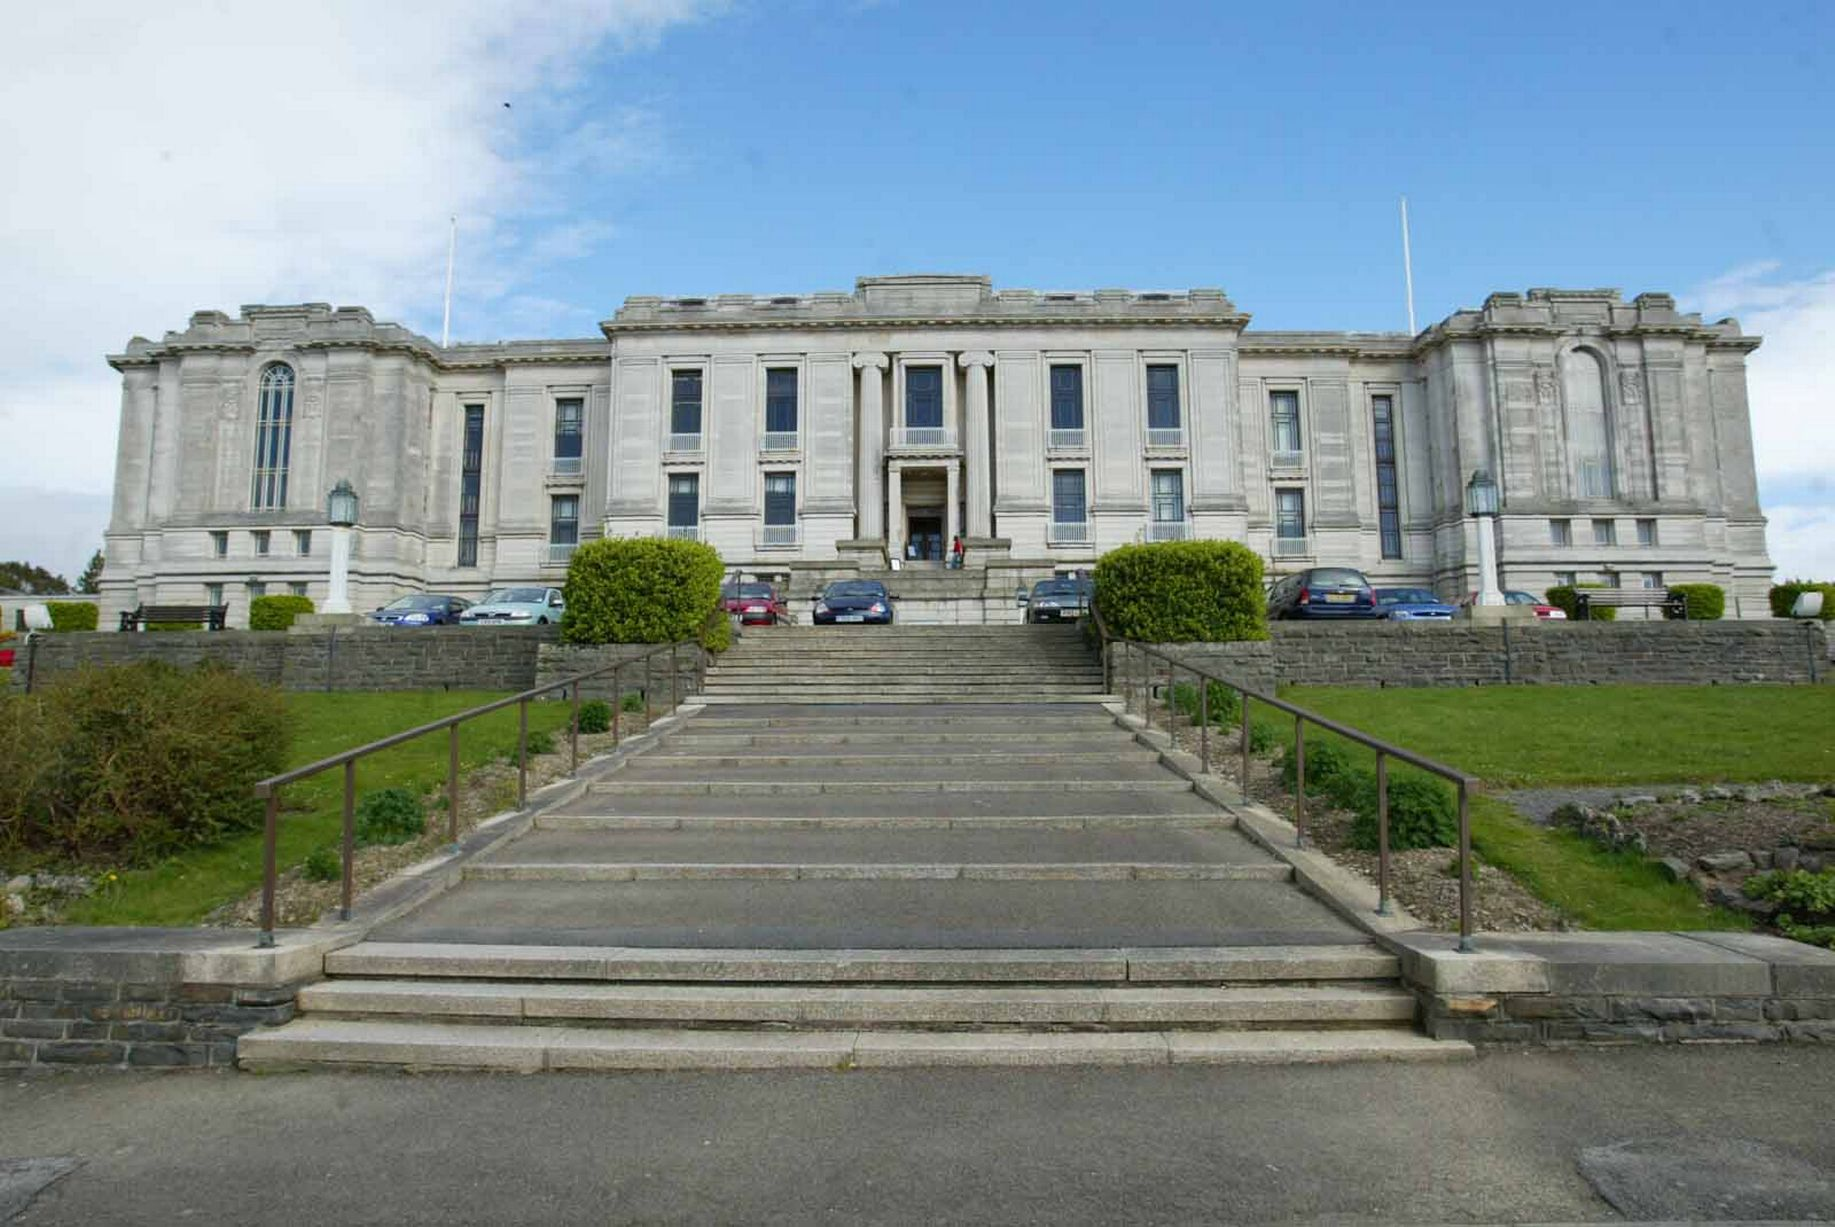 National Library of Wales Aberystwyth, National Library of Wales: Facts - Wales Online